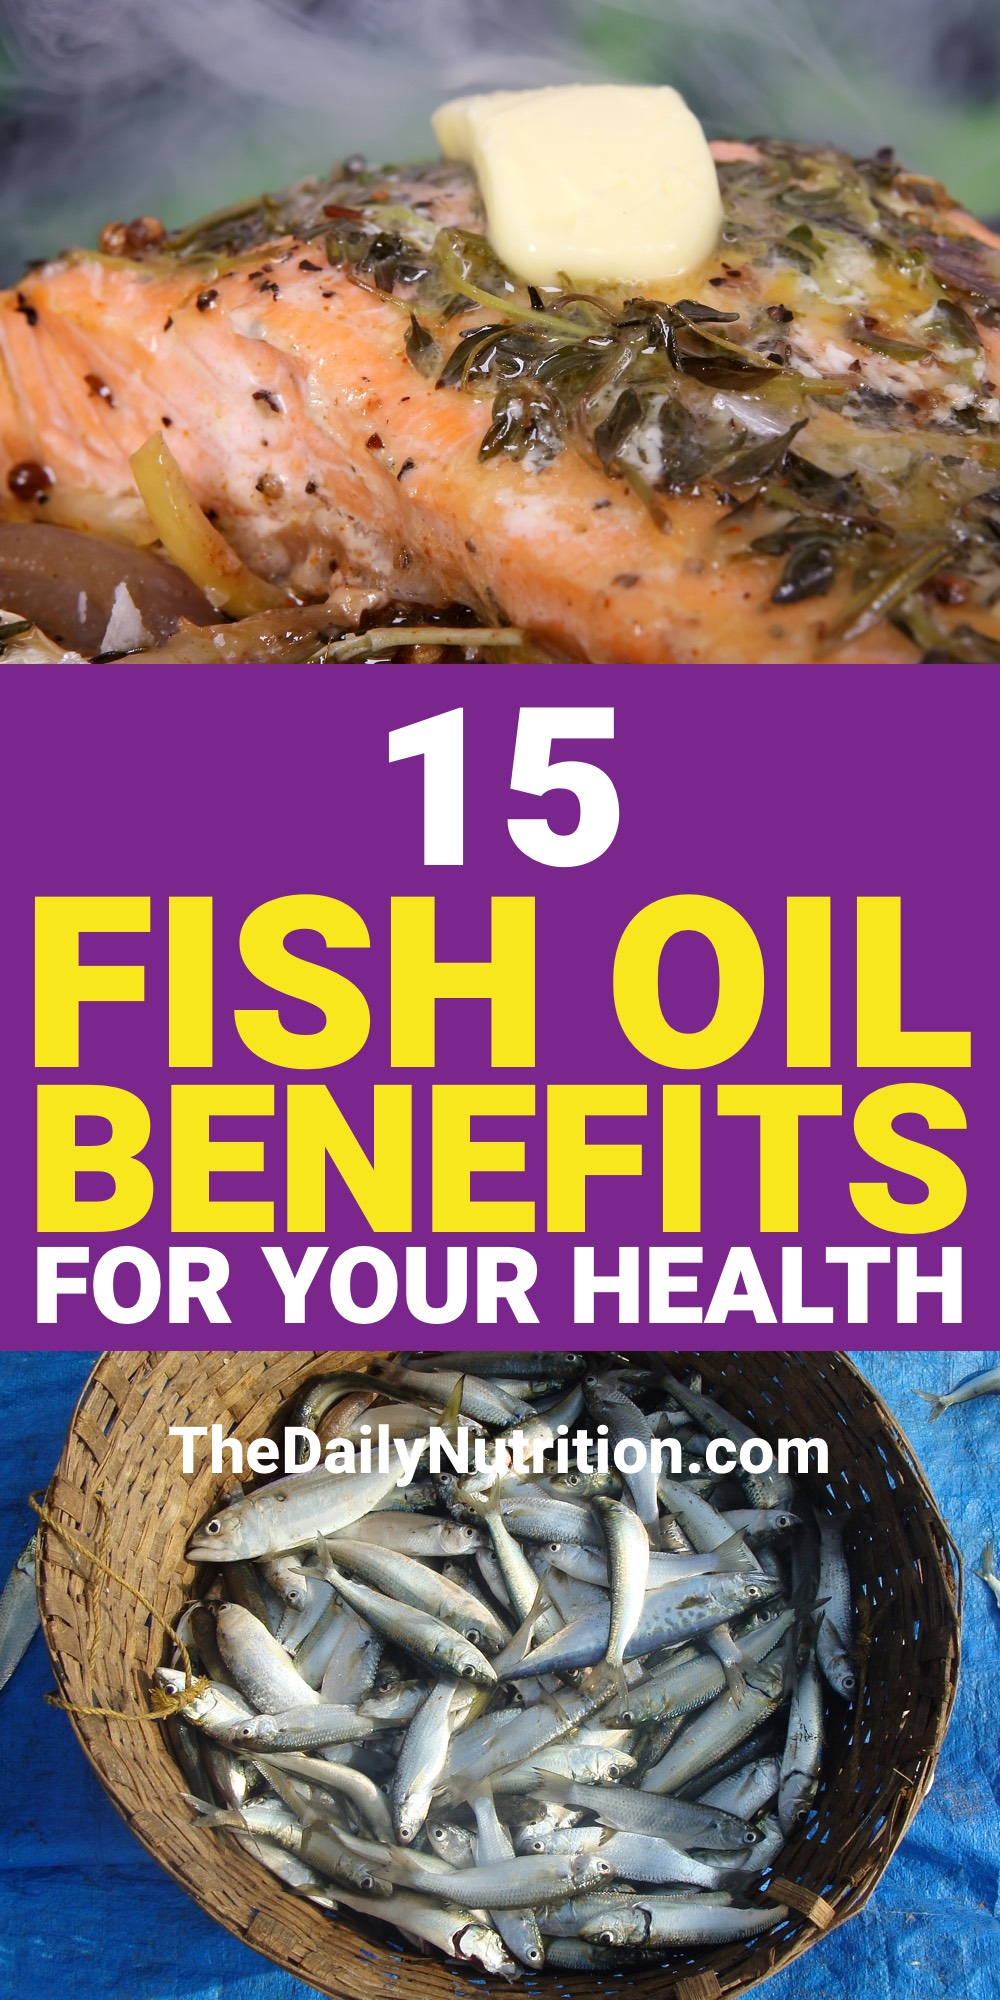 If you have fish oil in your life then you are going to be healthier than the average person. Here are 15 fish oil benefits that you need.